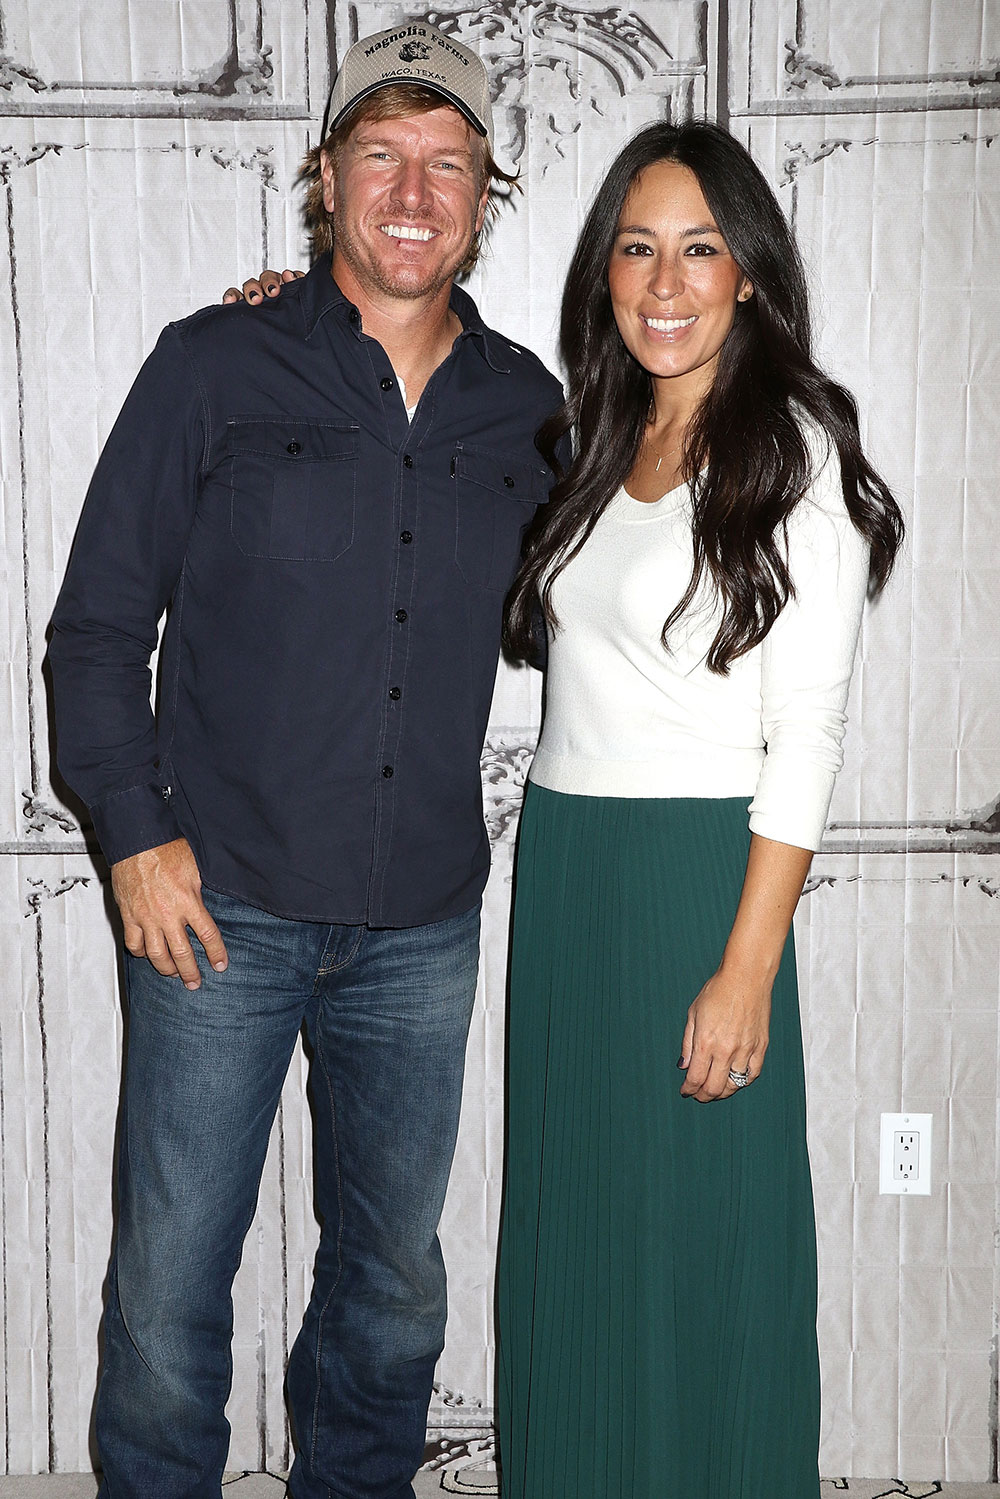 Chip and Joanna Gaines Just Wrapped Fixer Upper's Final Episode